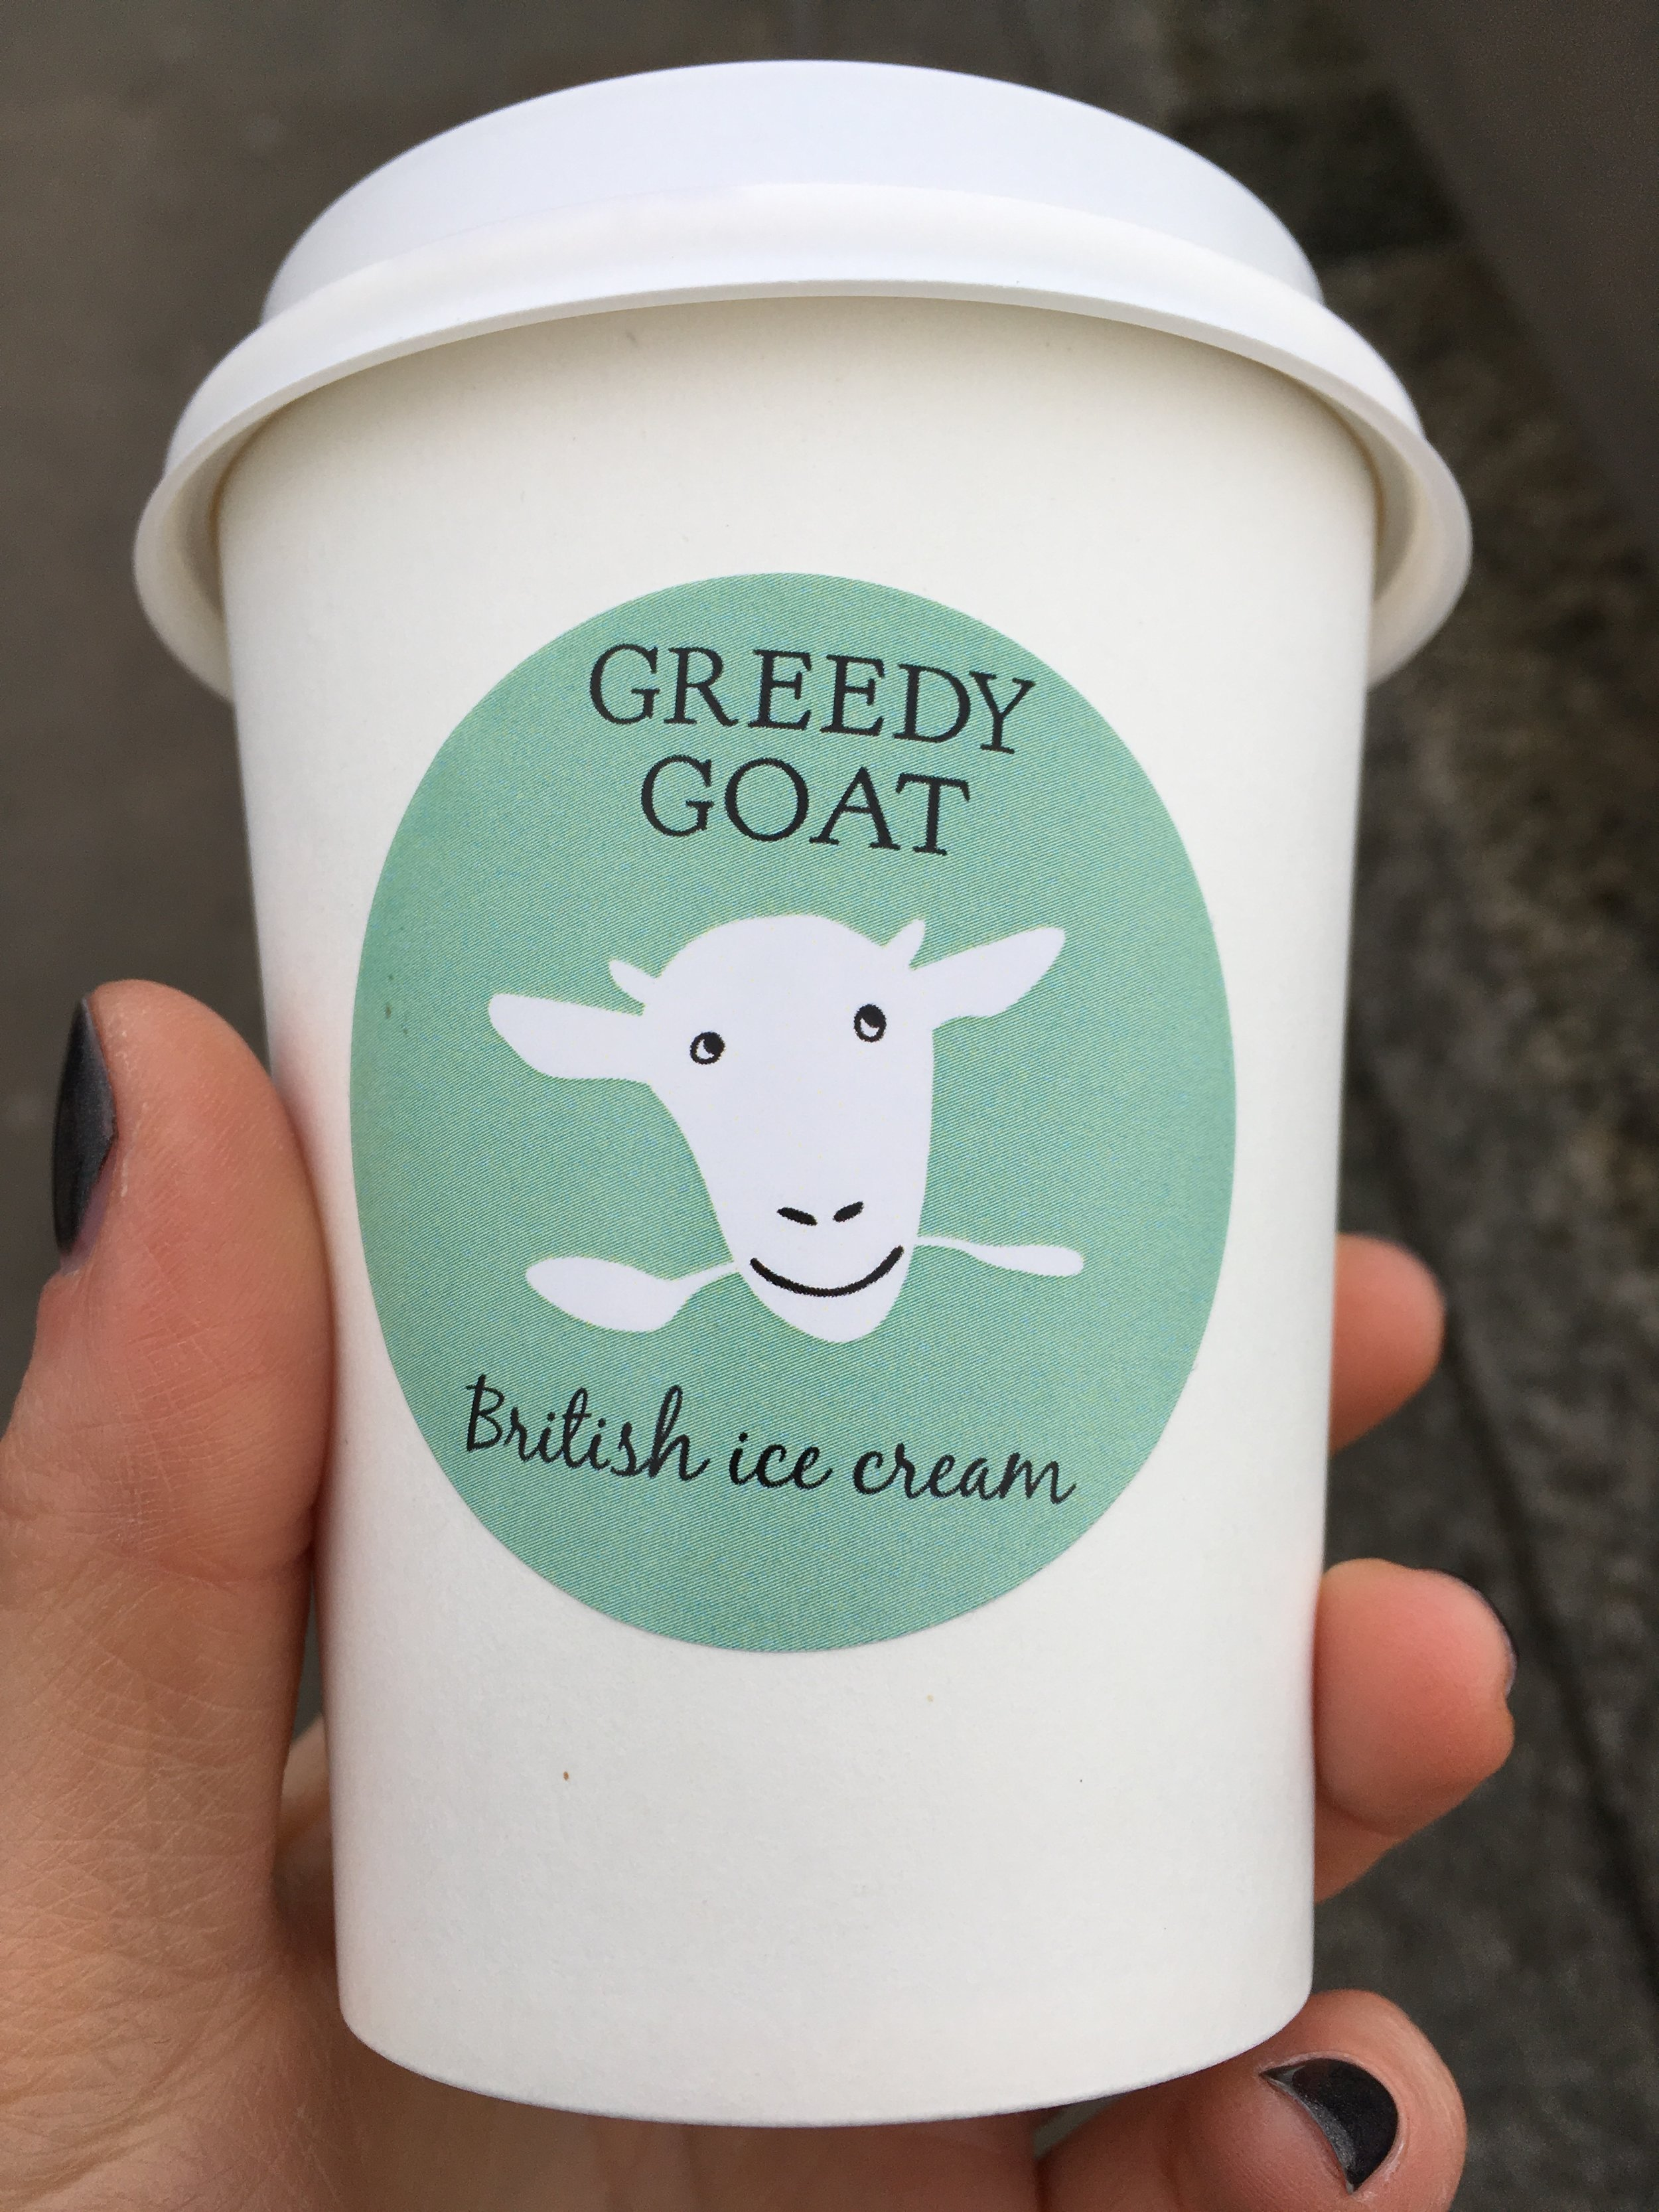 Delicious goats milk hot chocolate